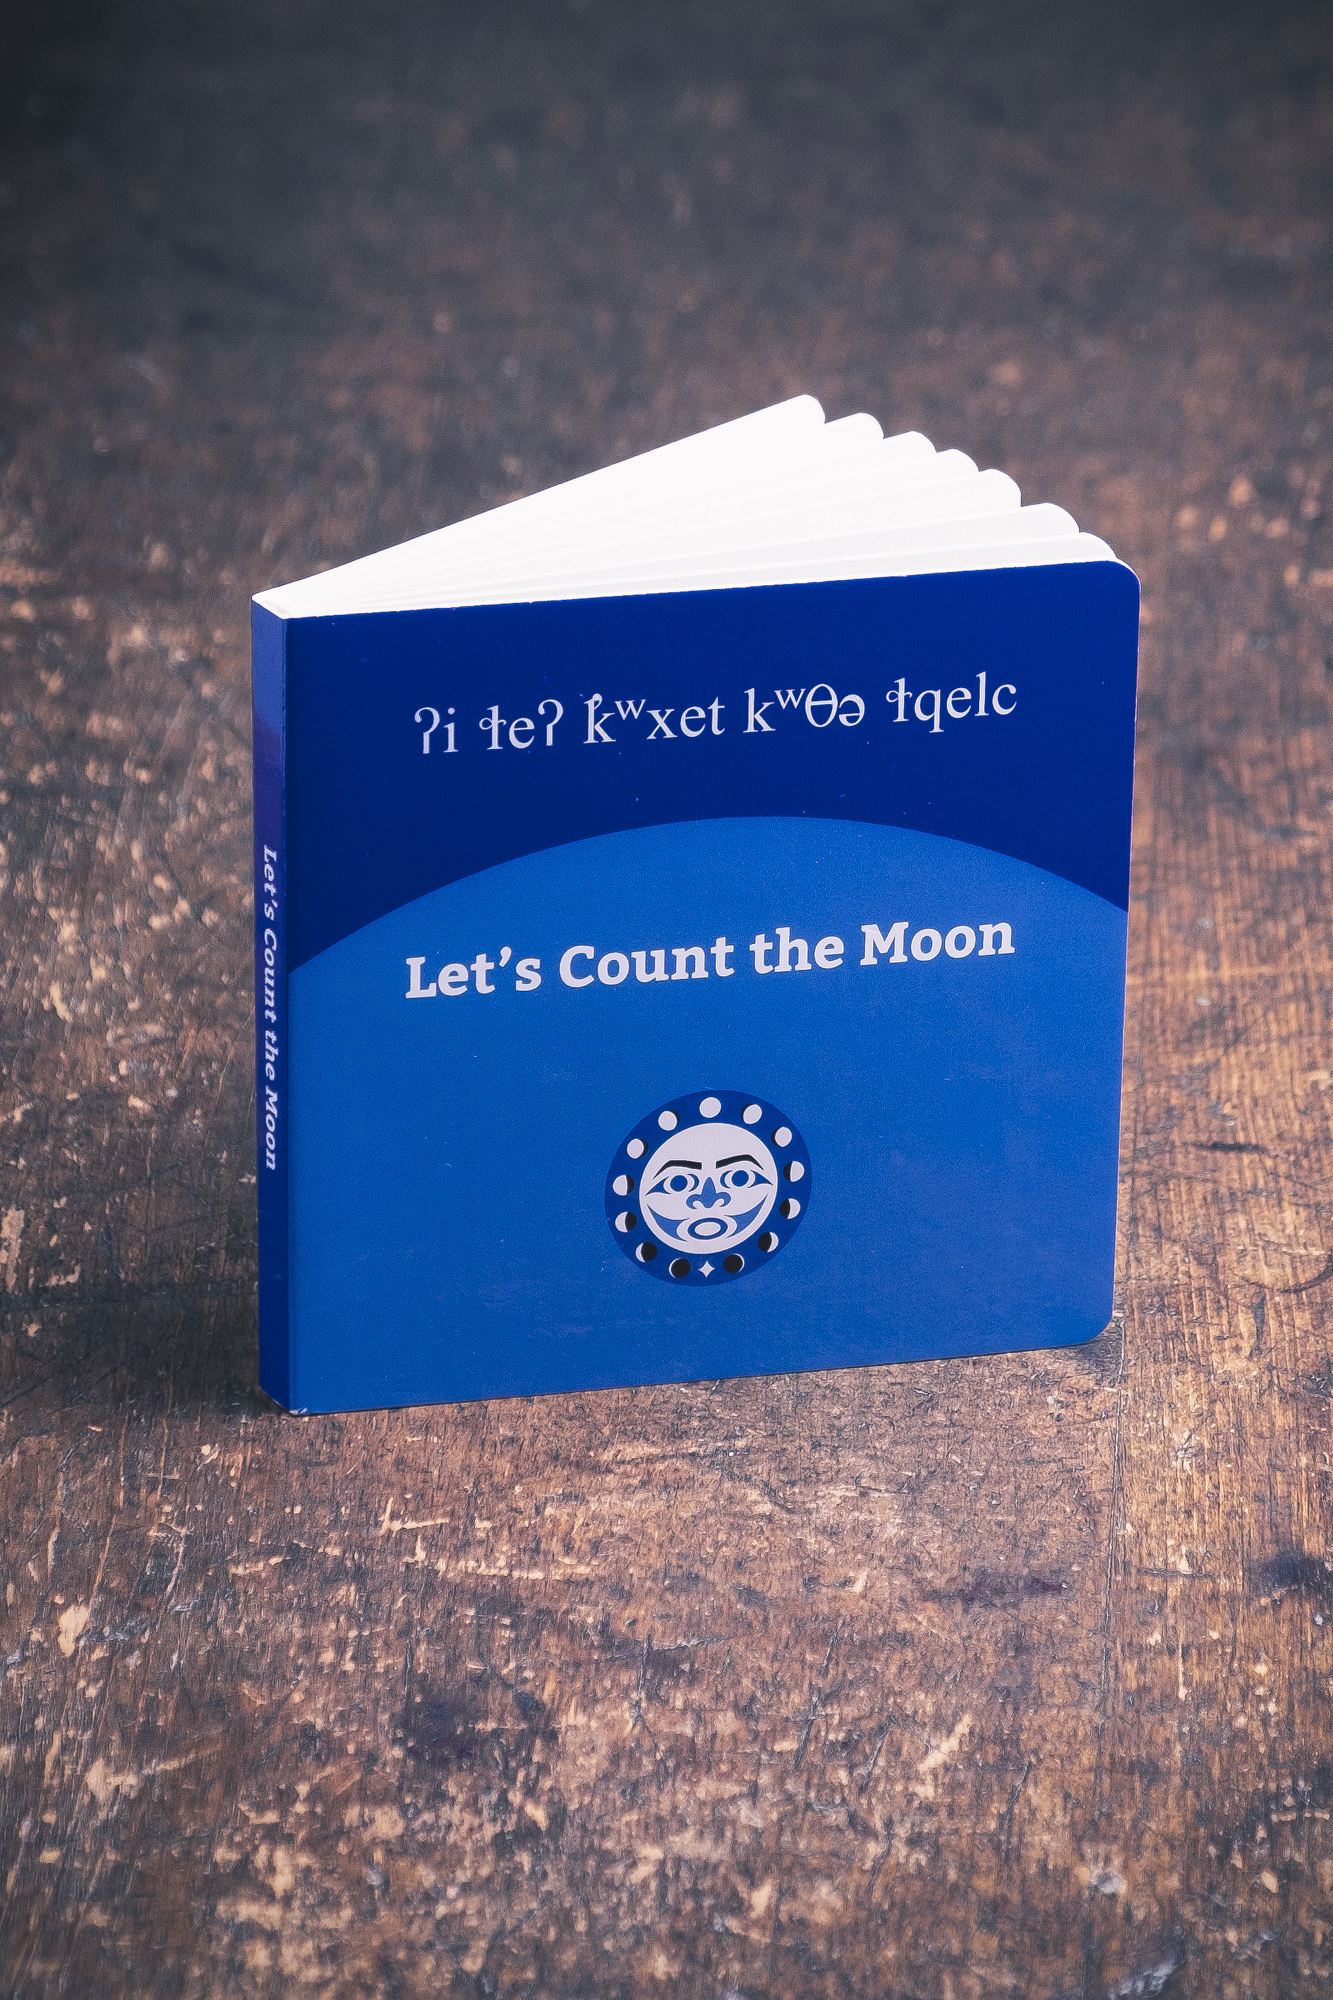 Let's Count the Moon book